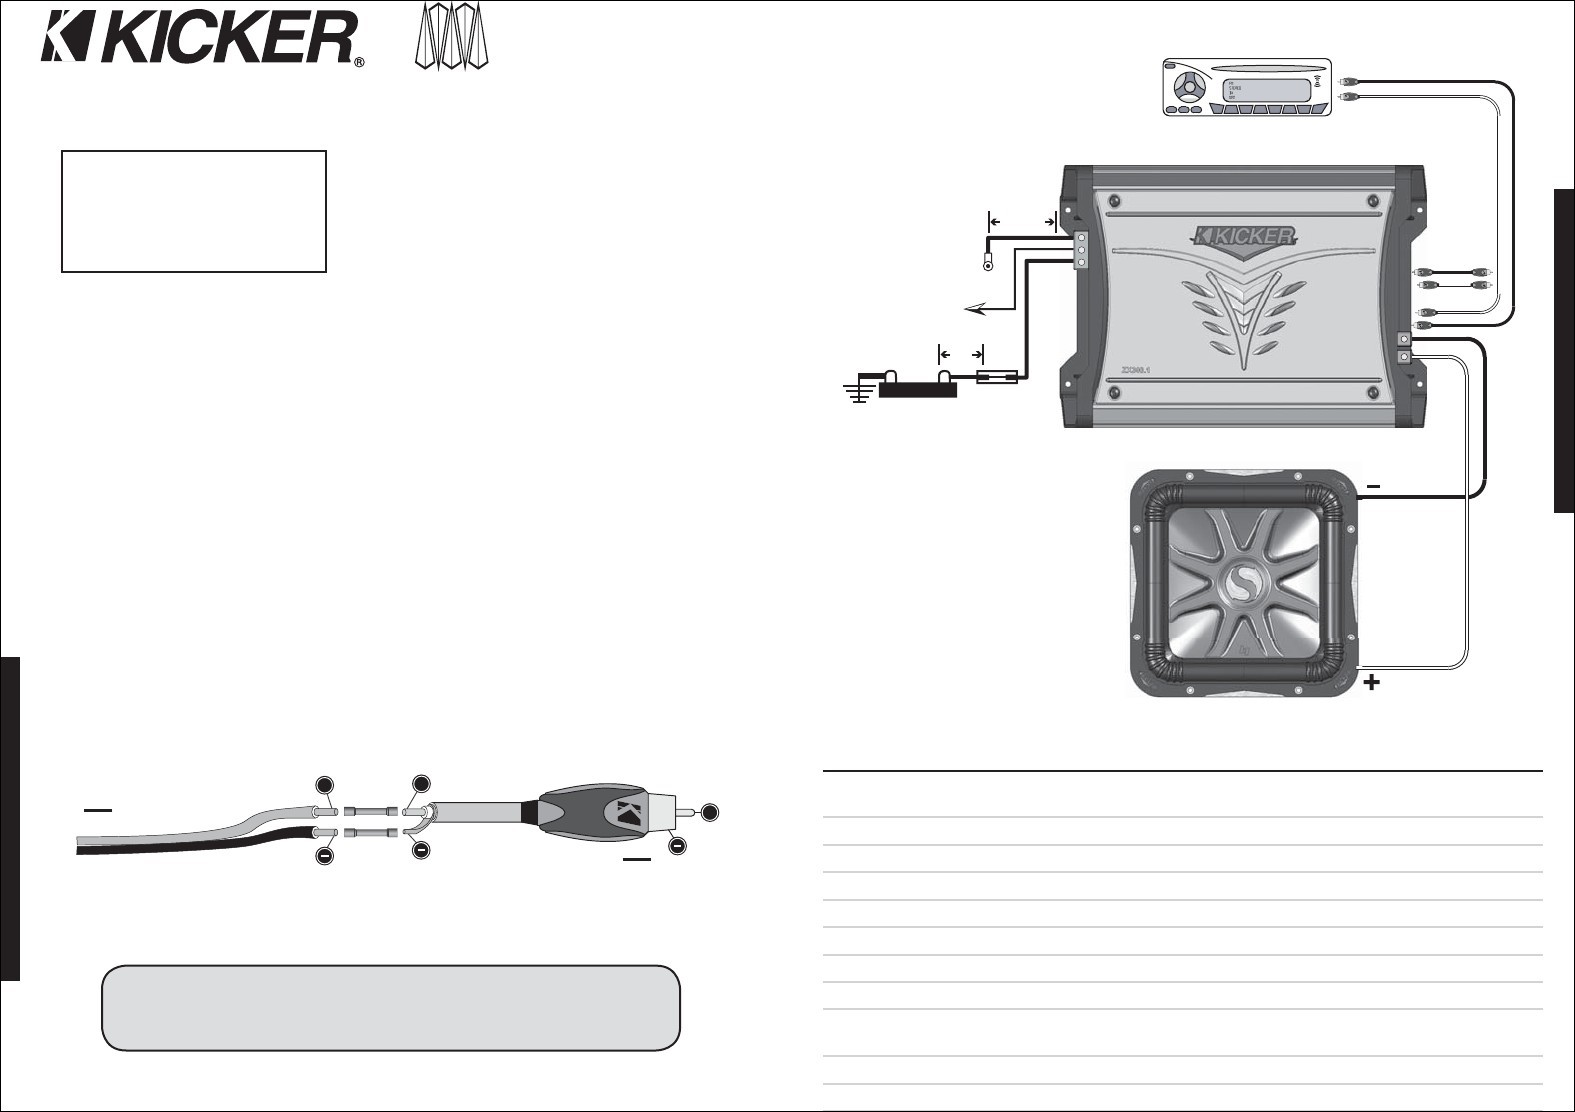 kicker kisl wiring diagram 2003 ford expedition radio solo baric l7 new image